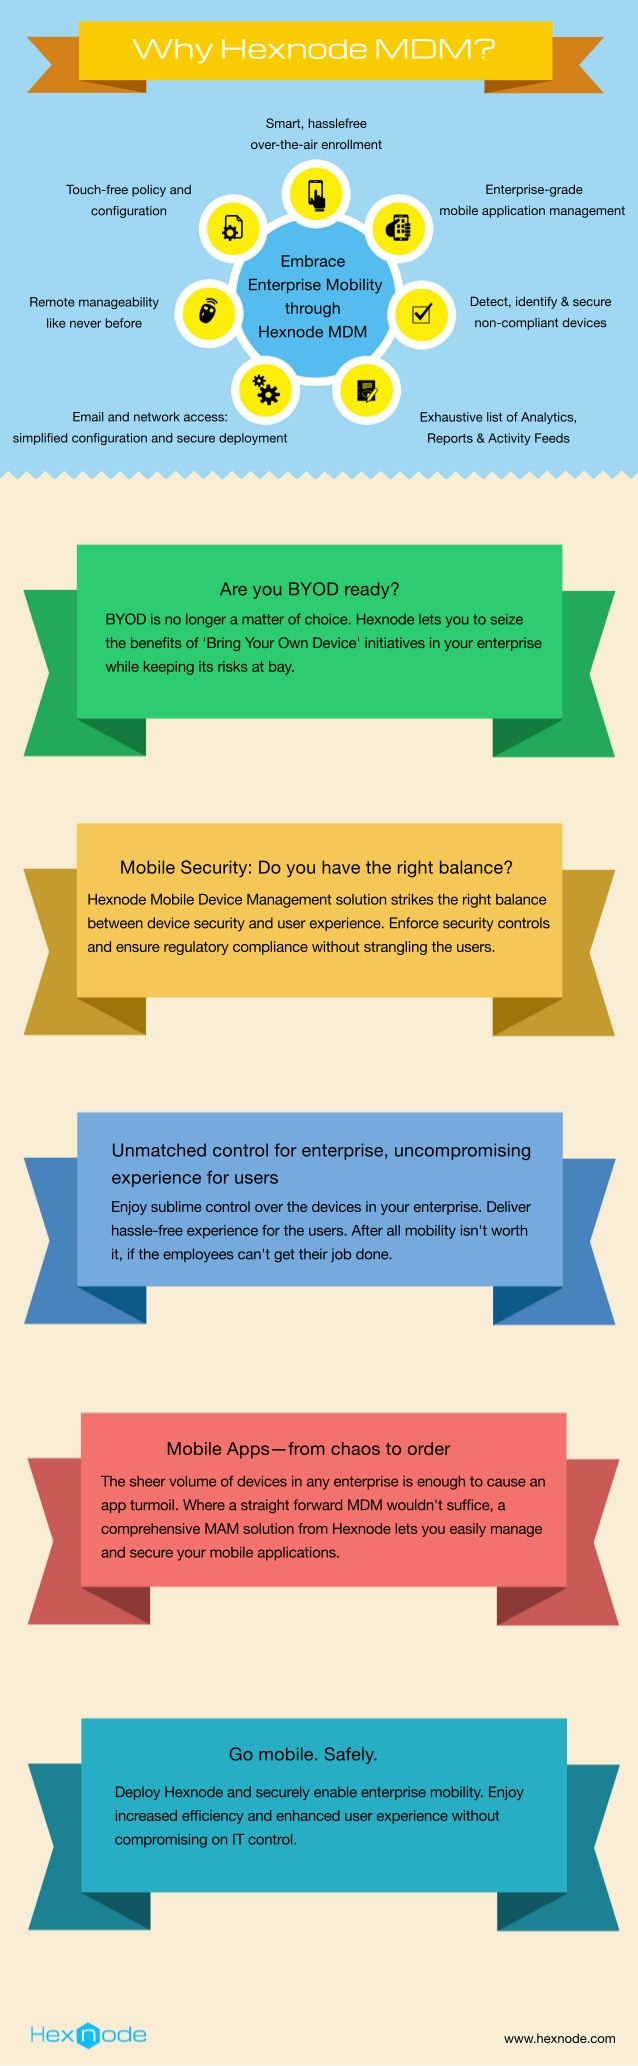 Mobile Device Management and Bring Your Own Device- Balancing benefits and risks by Hexnode via slideshare